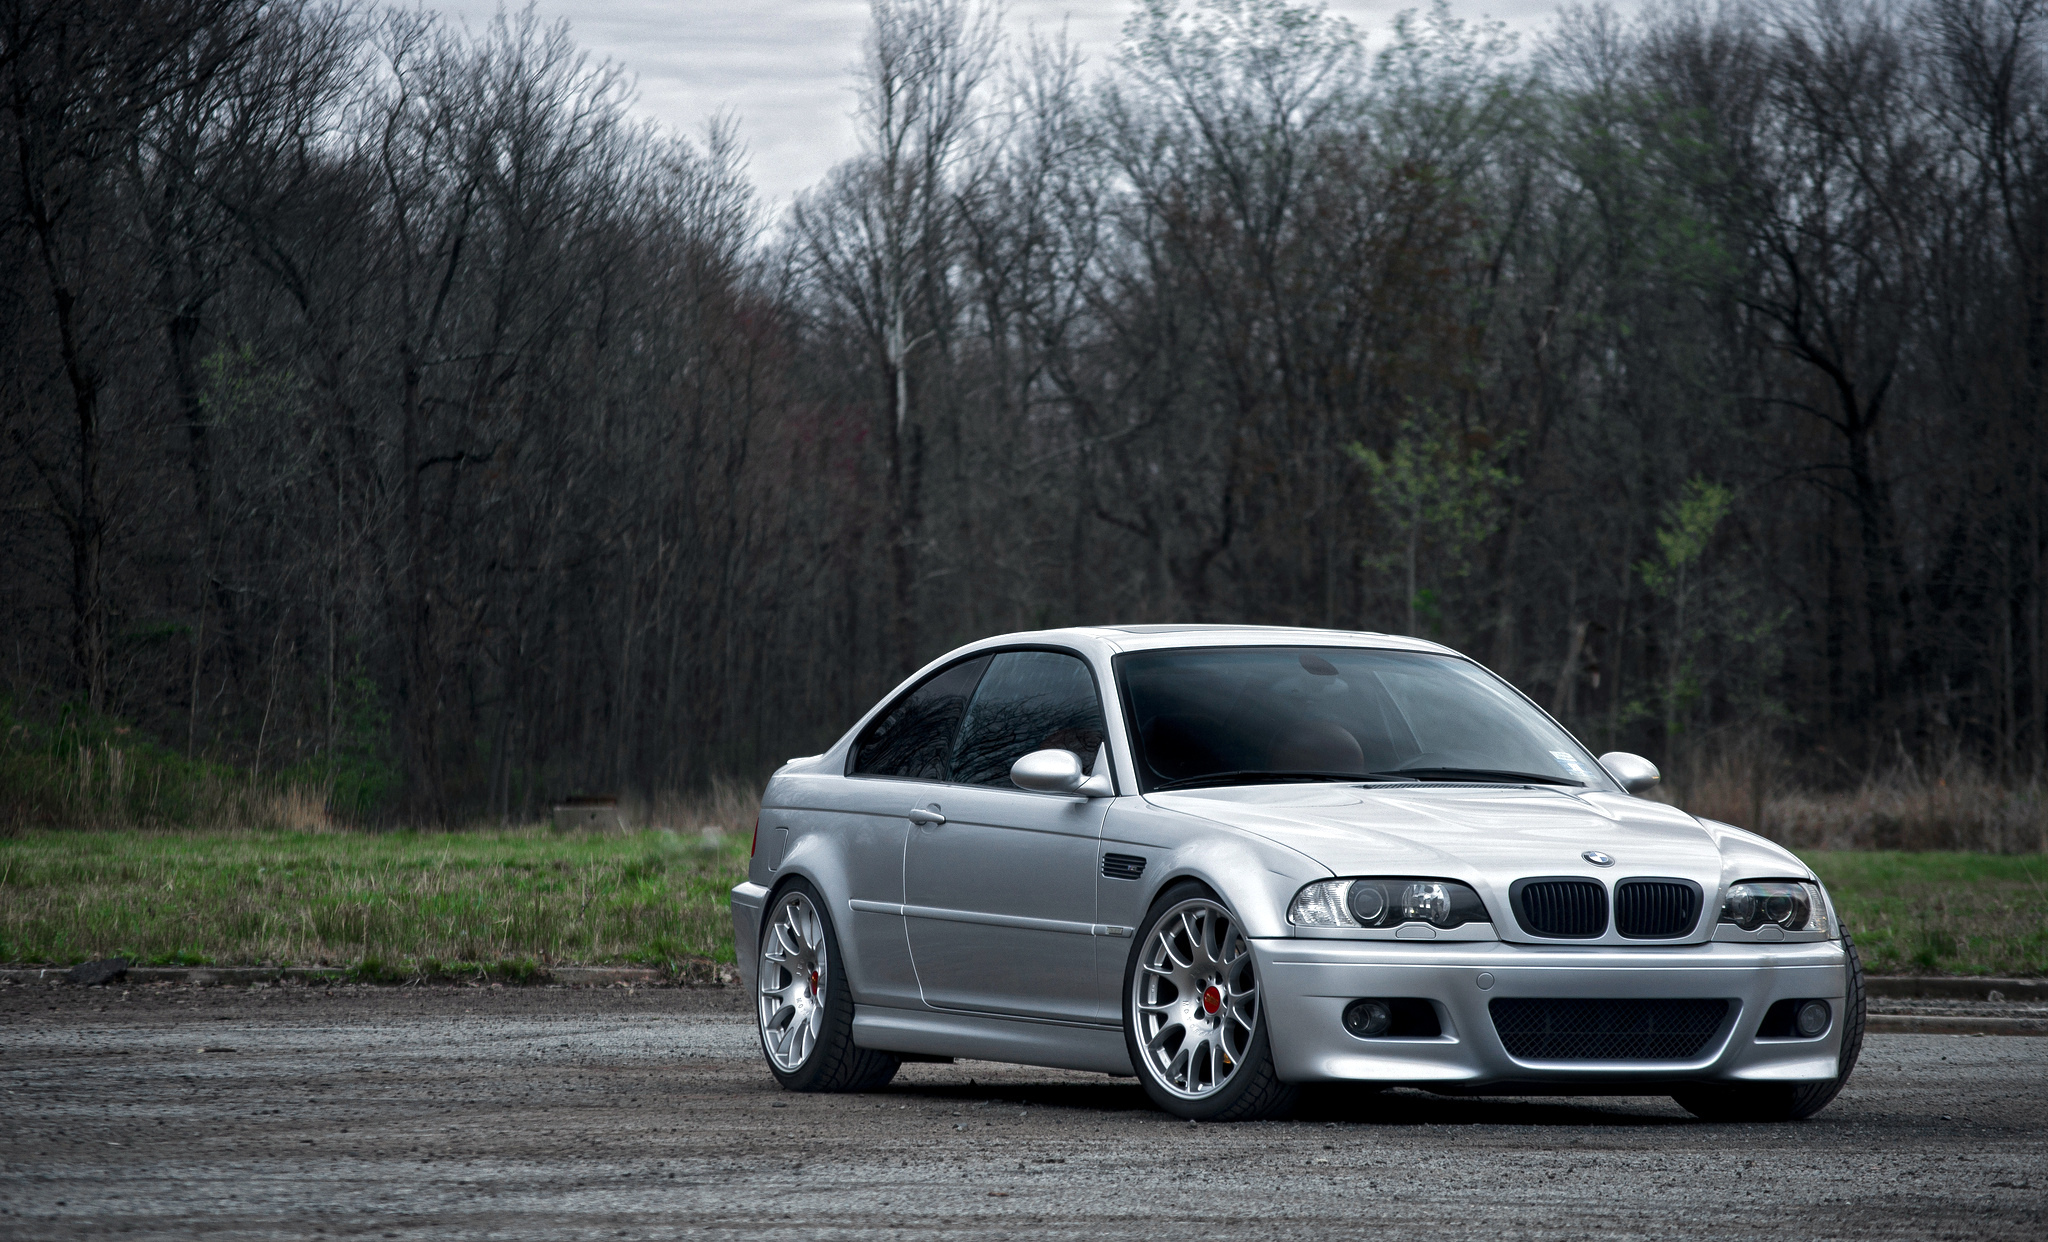 Bmw E46 M3 Silver 2325798   HD Wallpaper Backgrounds Download 2048x1242